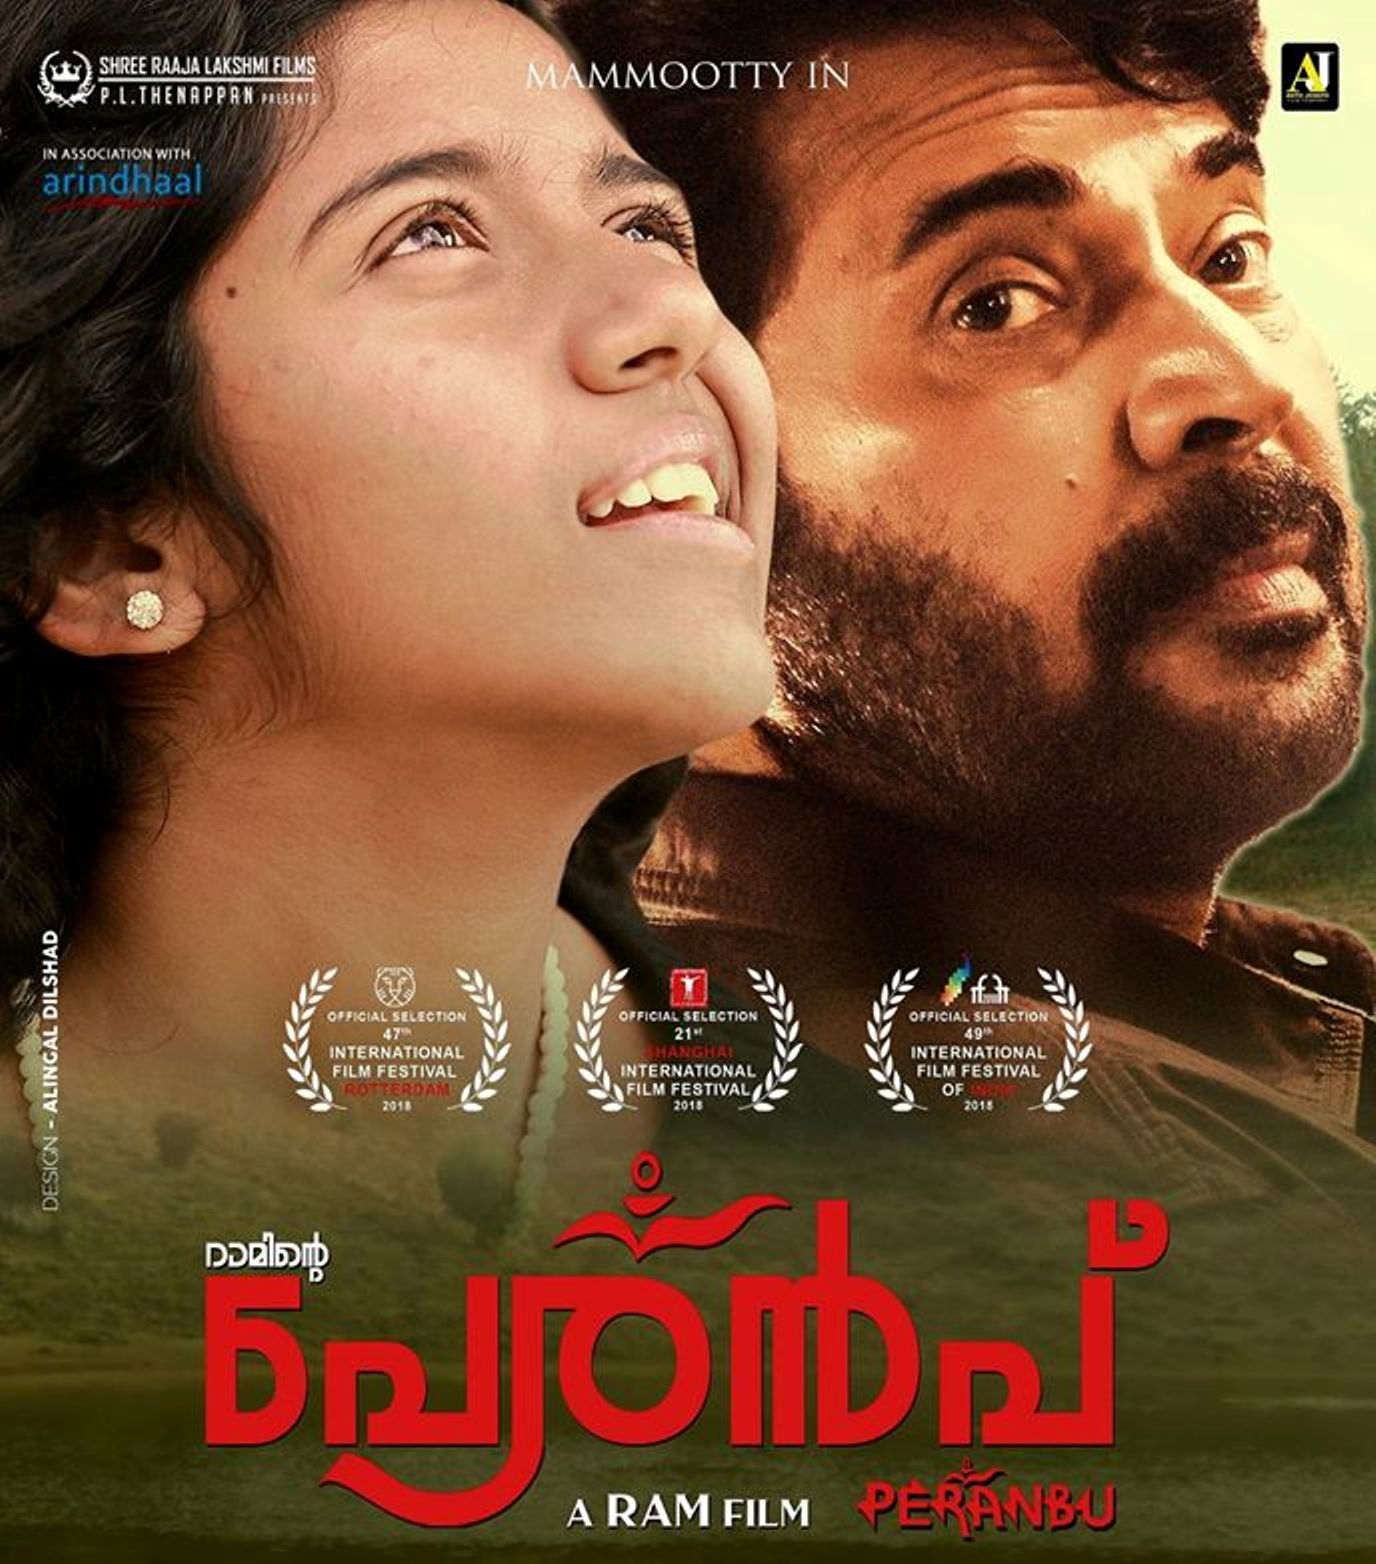 Mammootty-starrer Peranbu tops IMDb's list of Top Indian Movies of 2019. Photo courtesy: Facebook/Peranbu